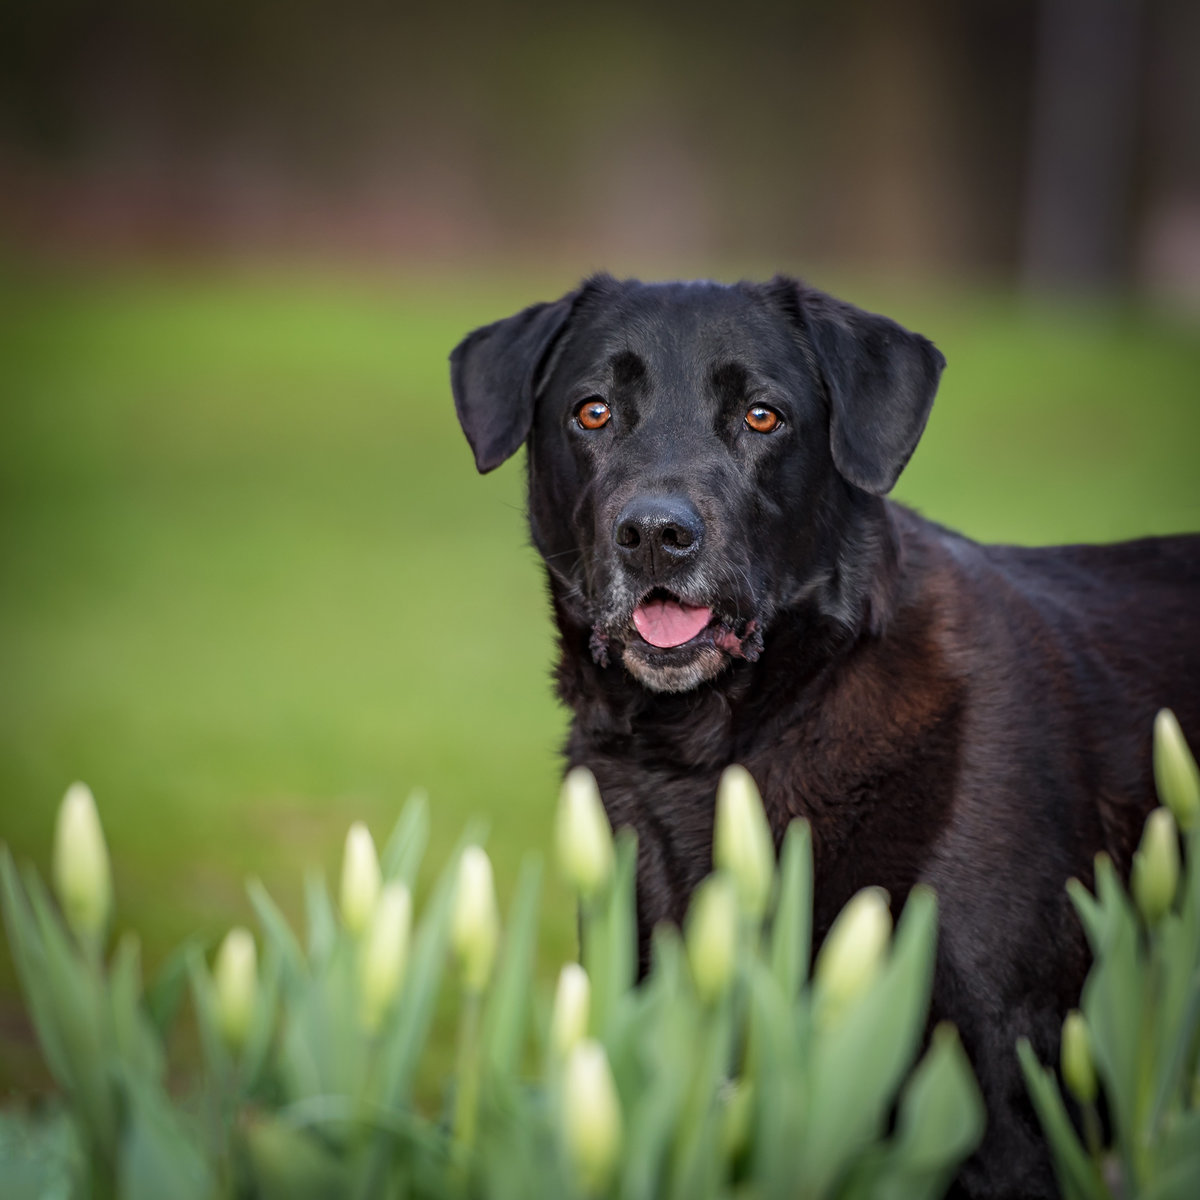 Sweet Black Labrador Retriever peering from white tulips